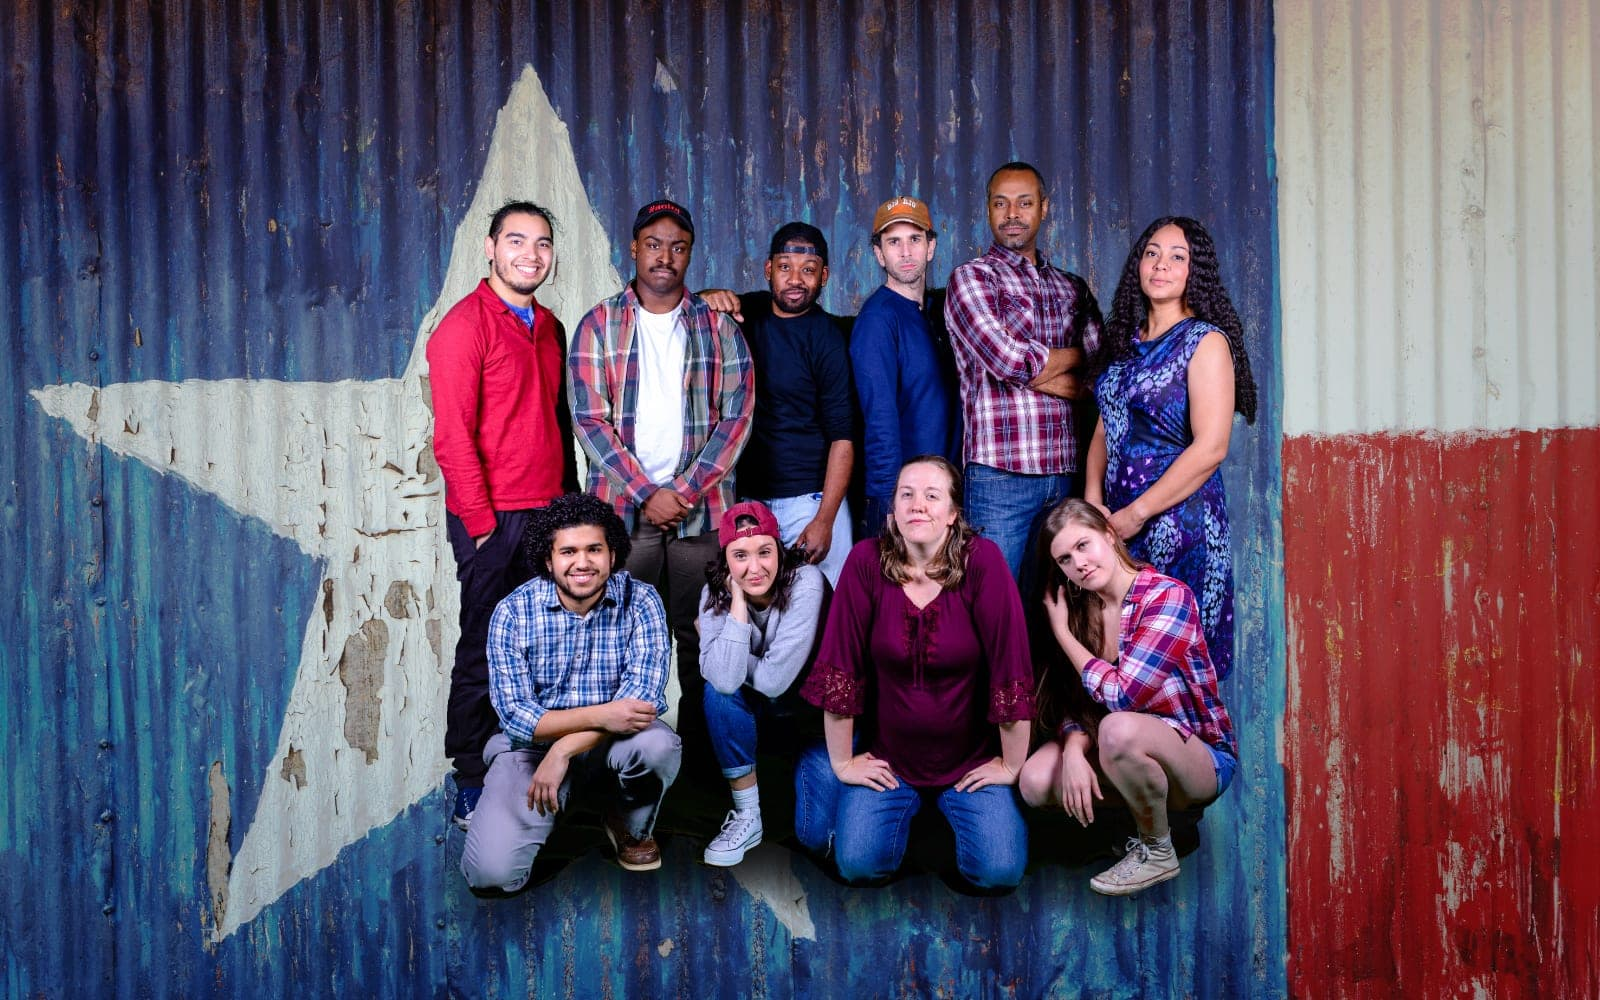 The cast of Keegan Theatre's 'Hands on a Hardbody,.' Photo by Mike Kozemchak.